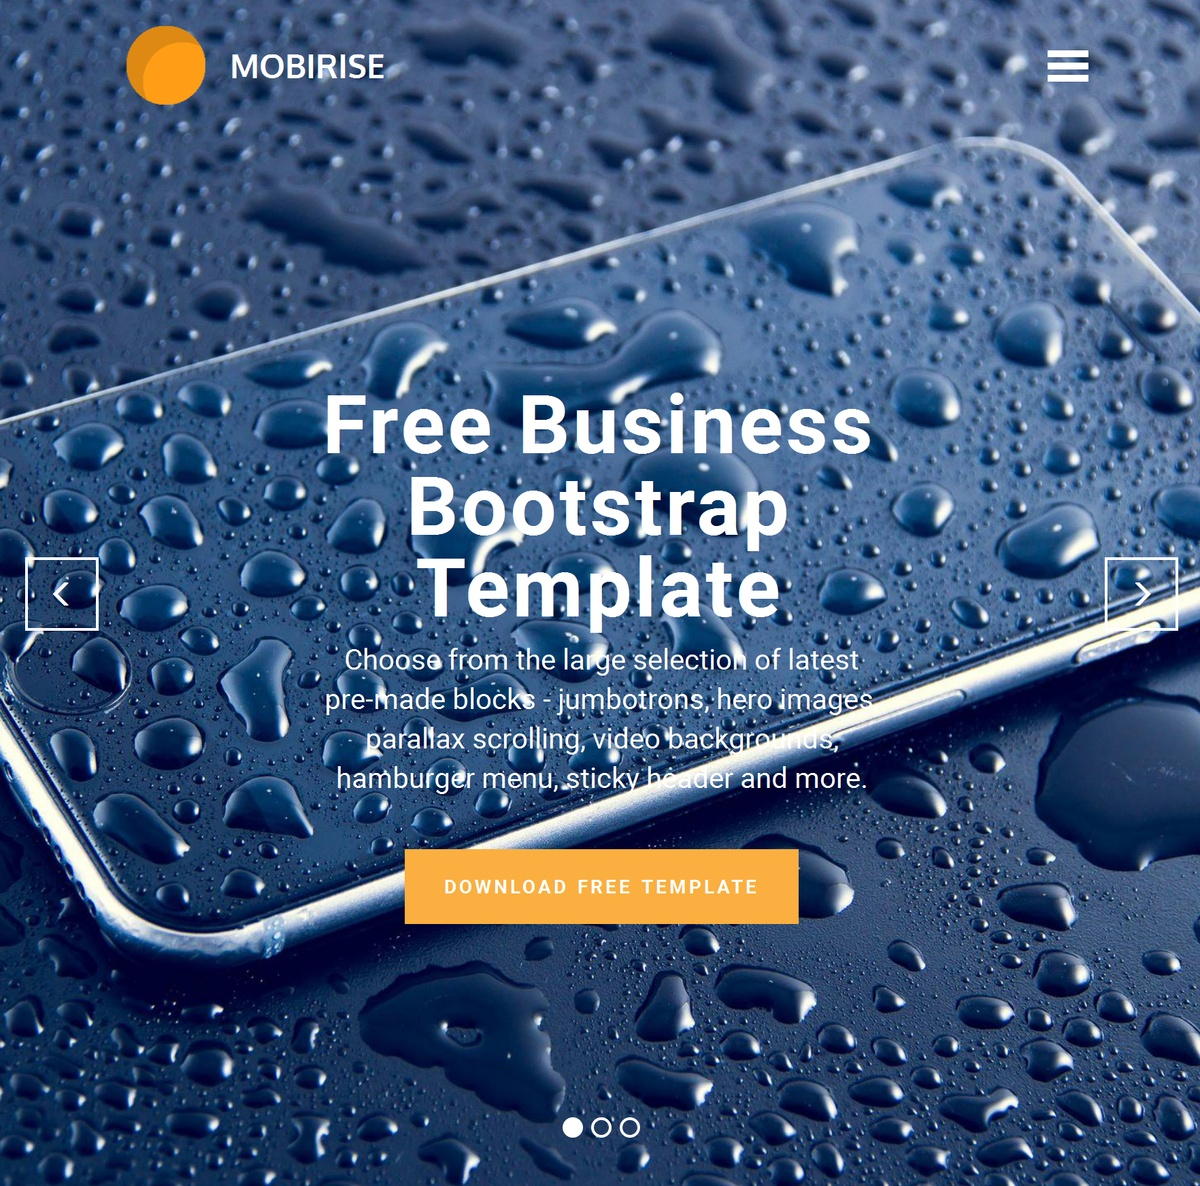 HTML Responsive Website Templates Themes Extensions